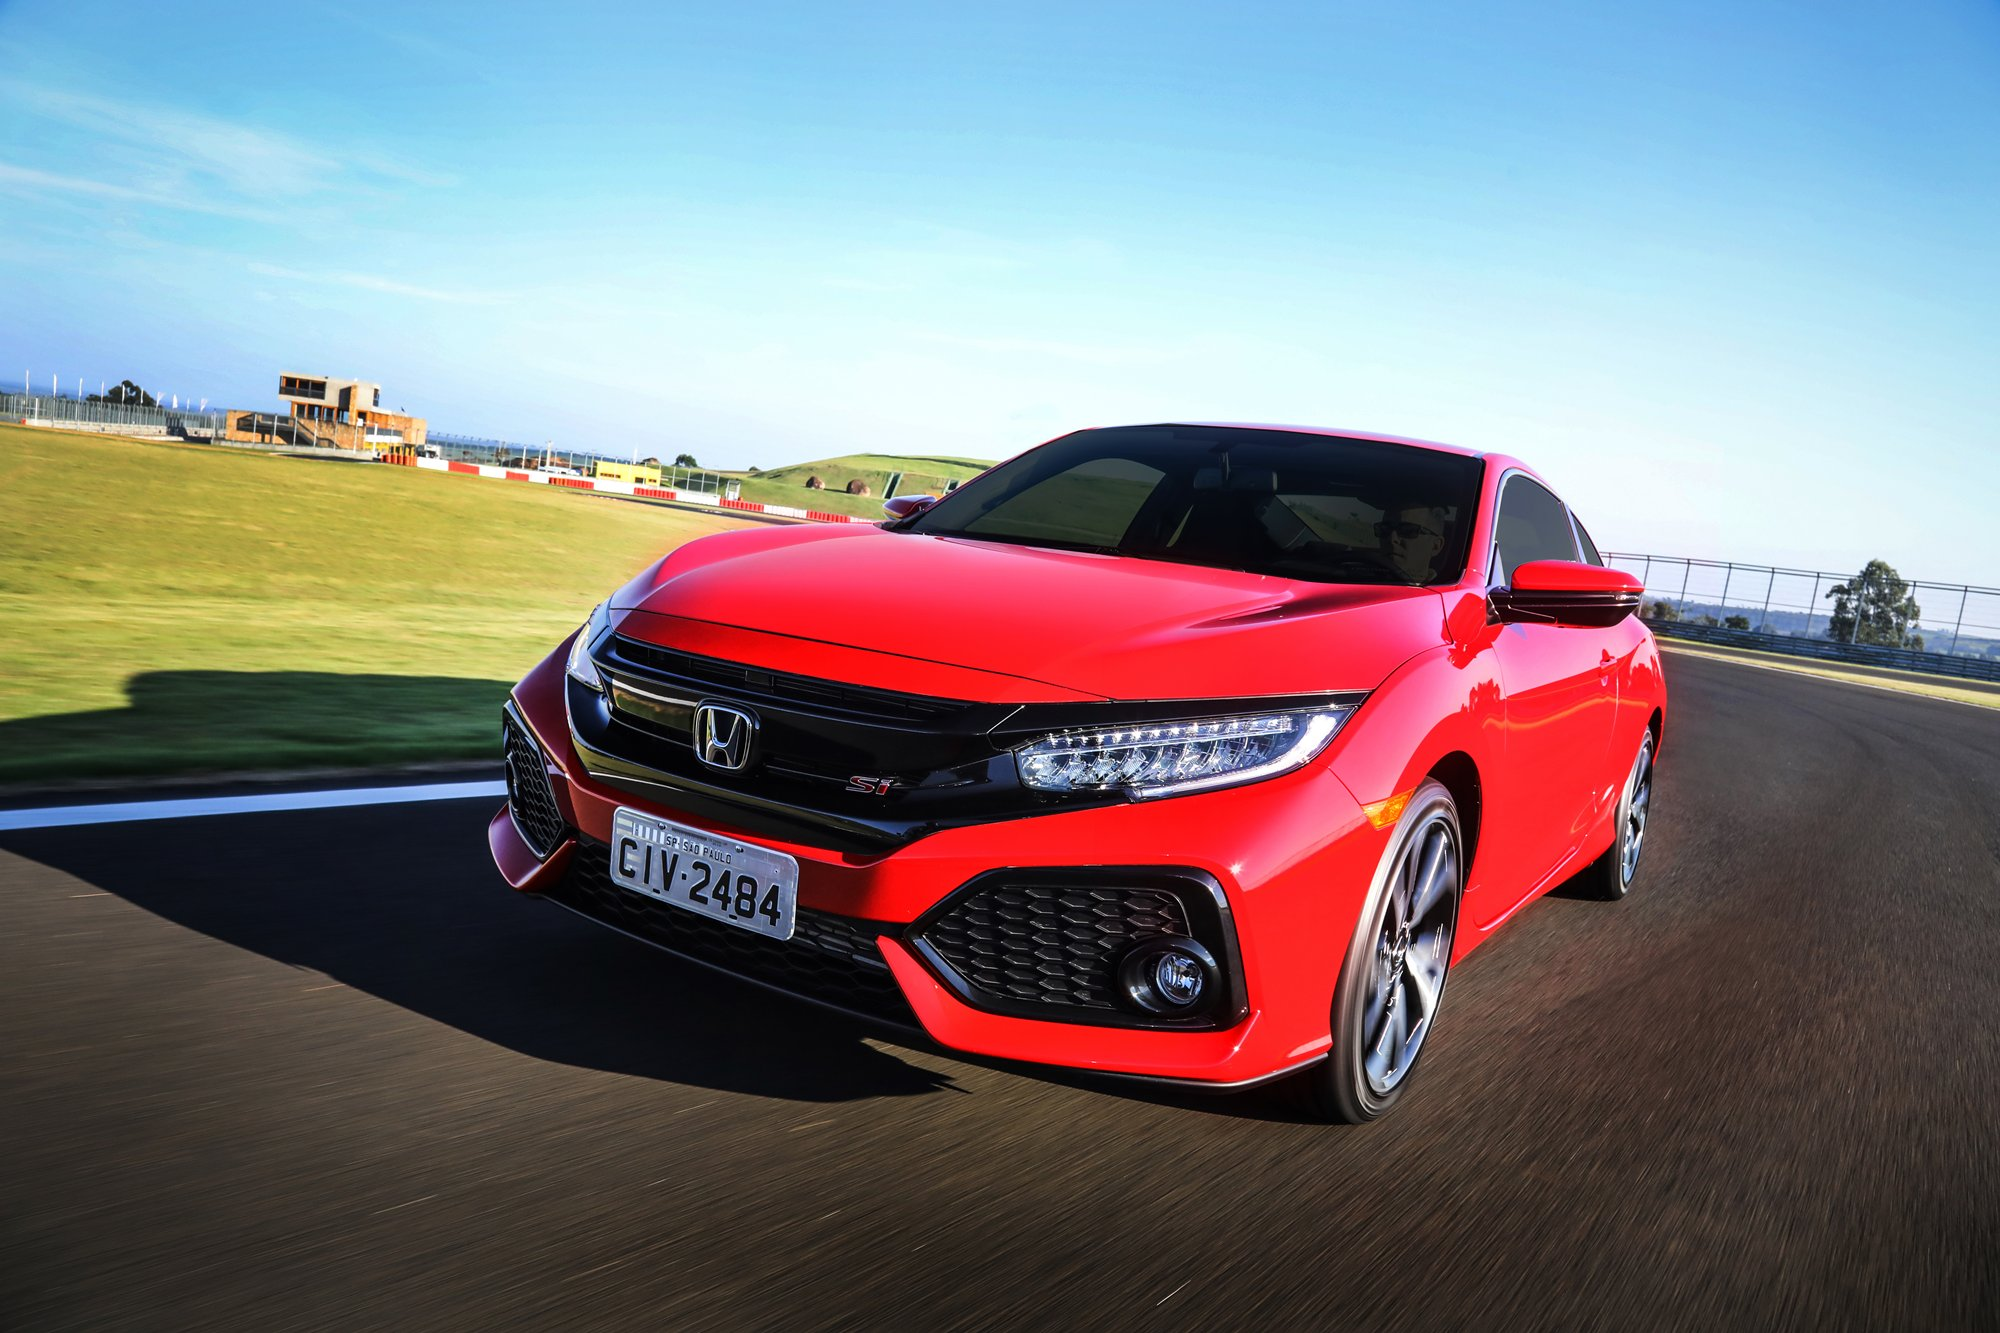 Honda Civic Si, sigla para Sport Injection